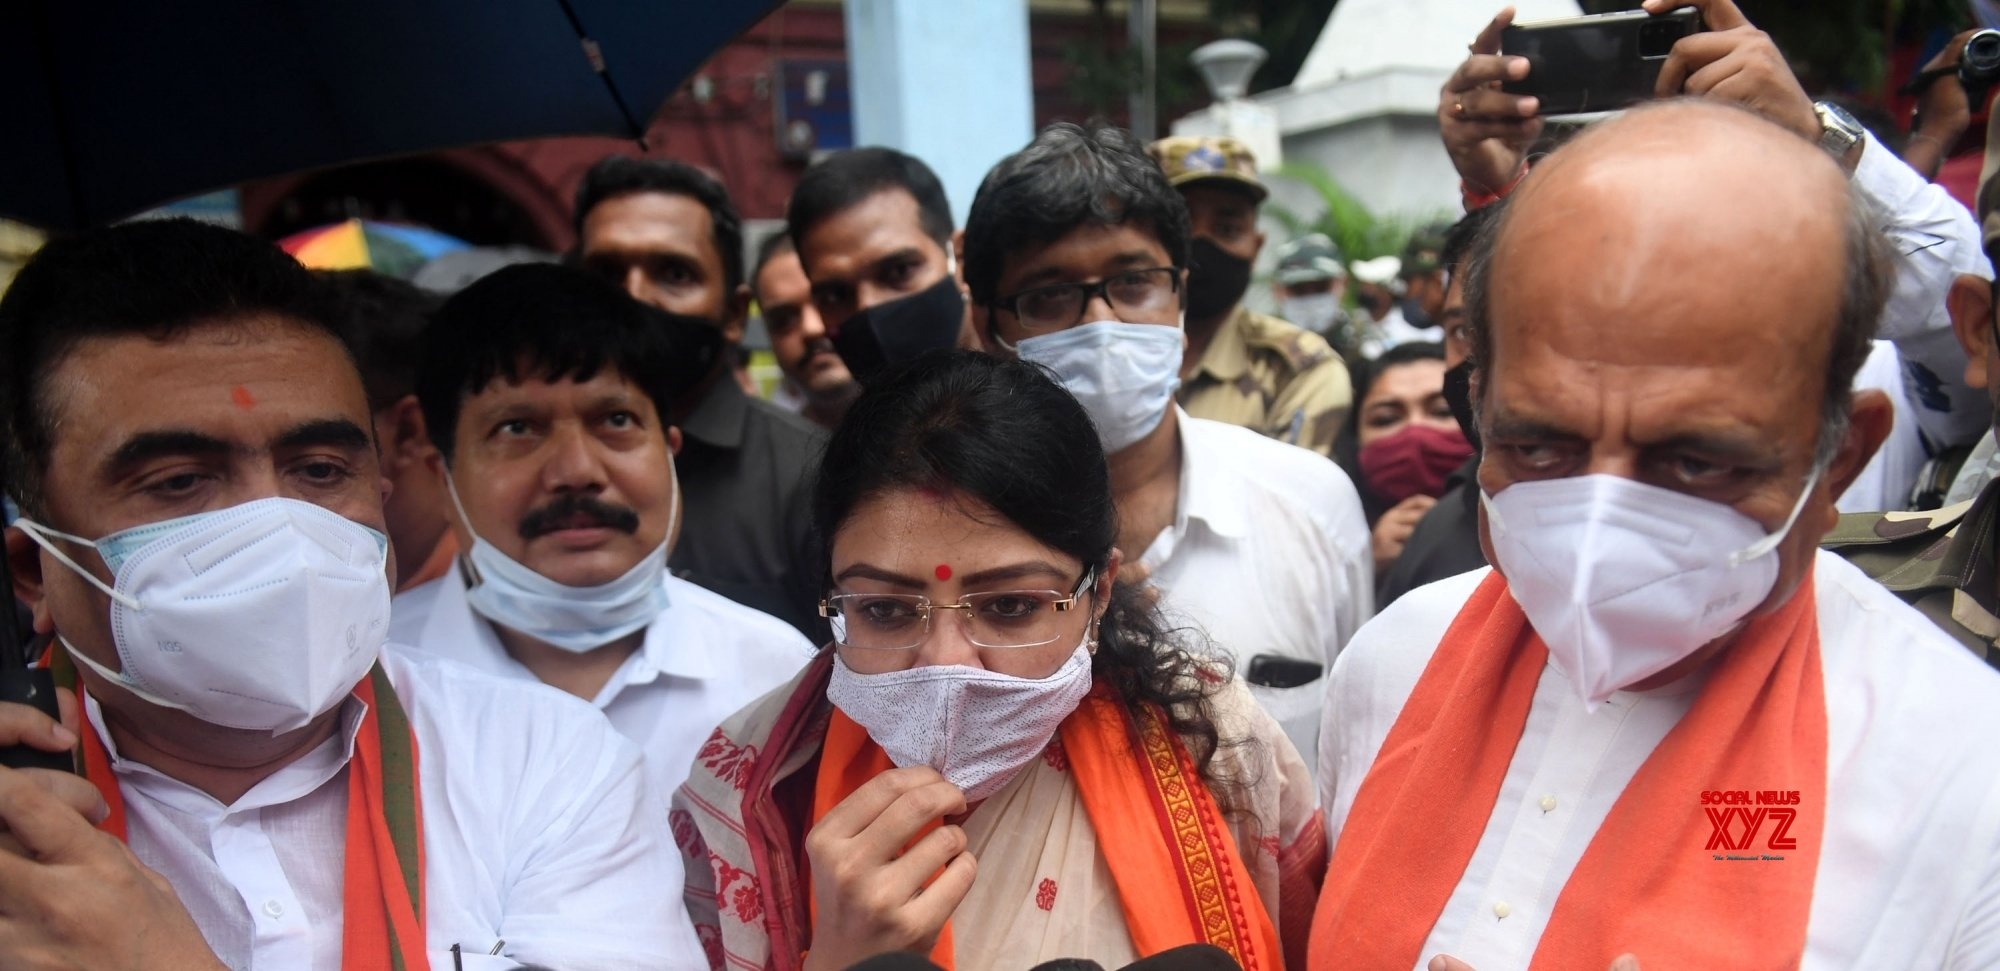 Kolkata: BJP candidate for Bhowanipore constituency by - poll, Priyanka Tibrewal with other BJP leaders after filling nomination comes out from Alipore Survey building in Kolkata #Gallery